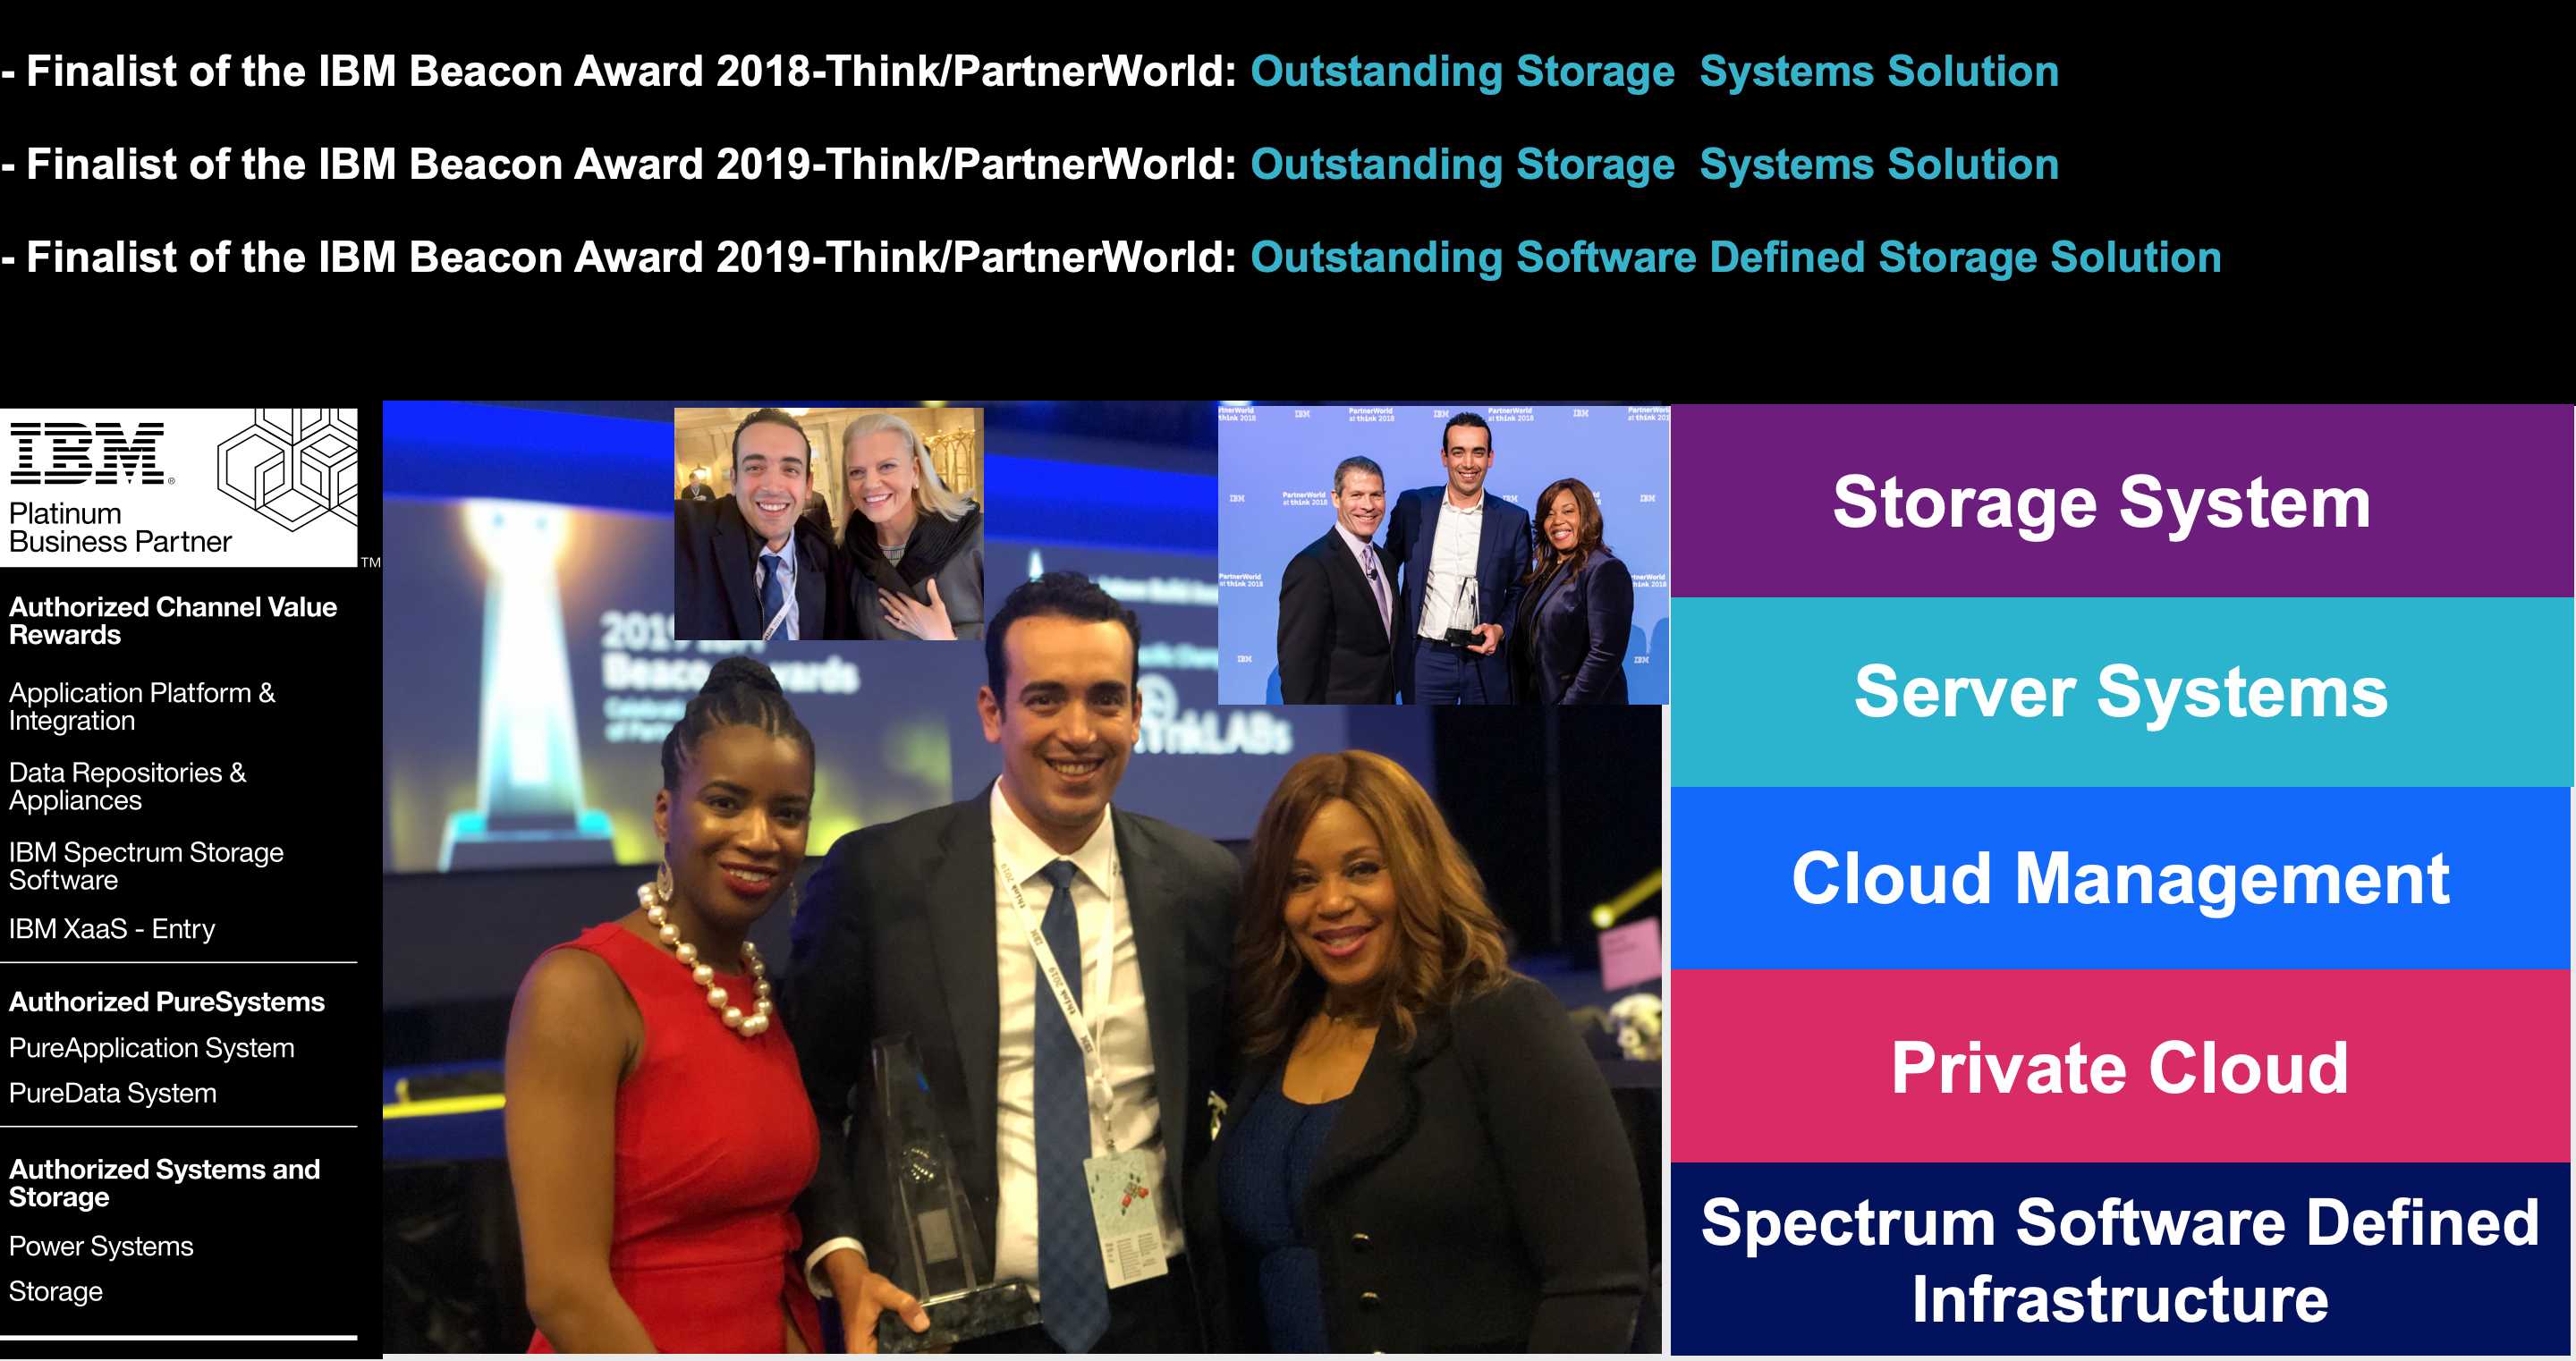 IBM Beacon Awards achievement